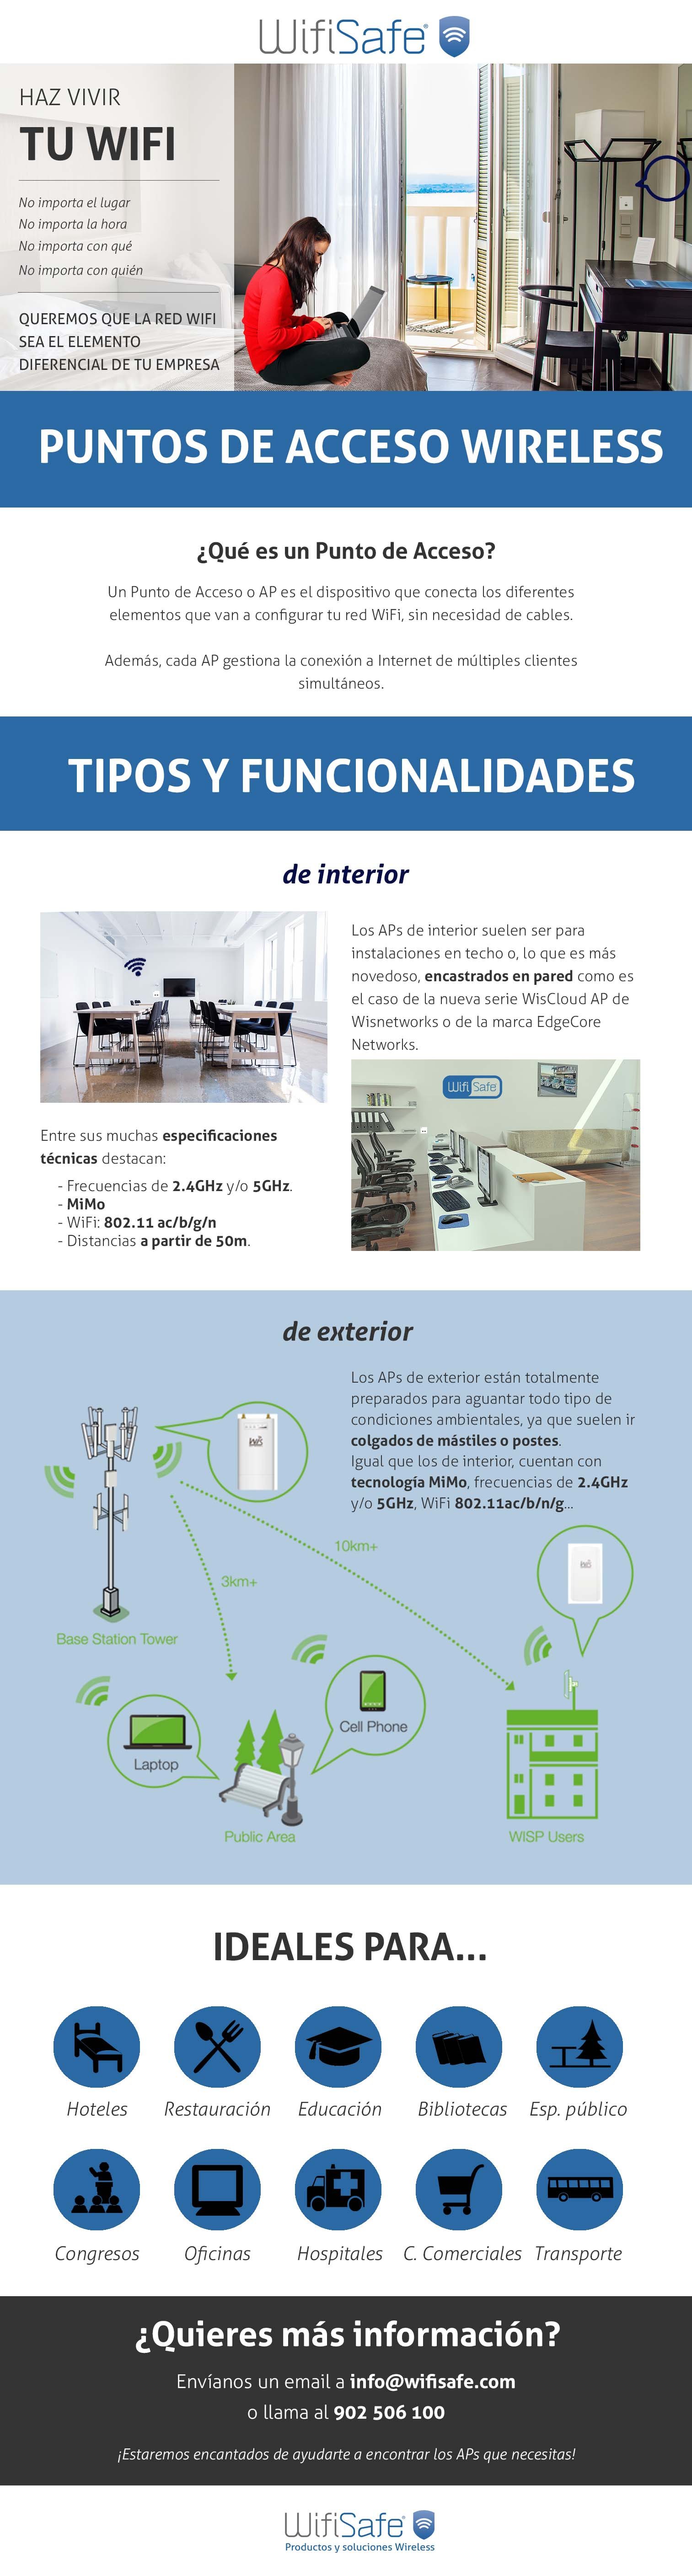 Puntos de Acceso Wireless